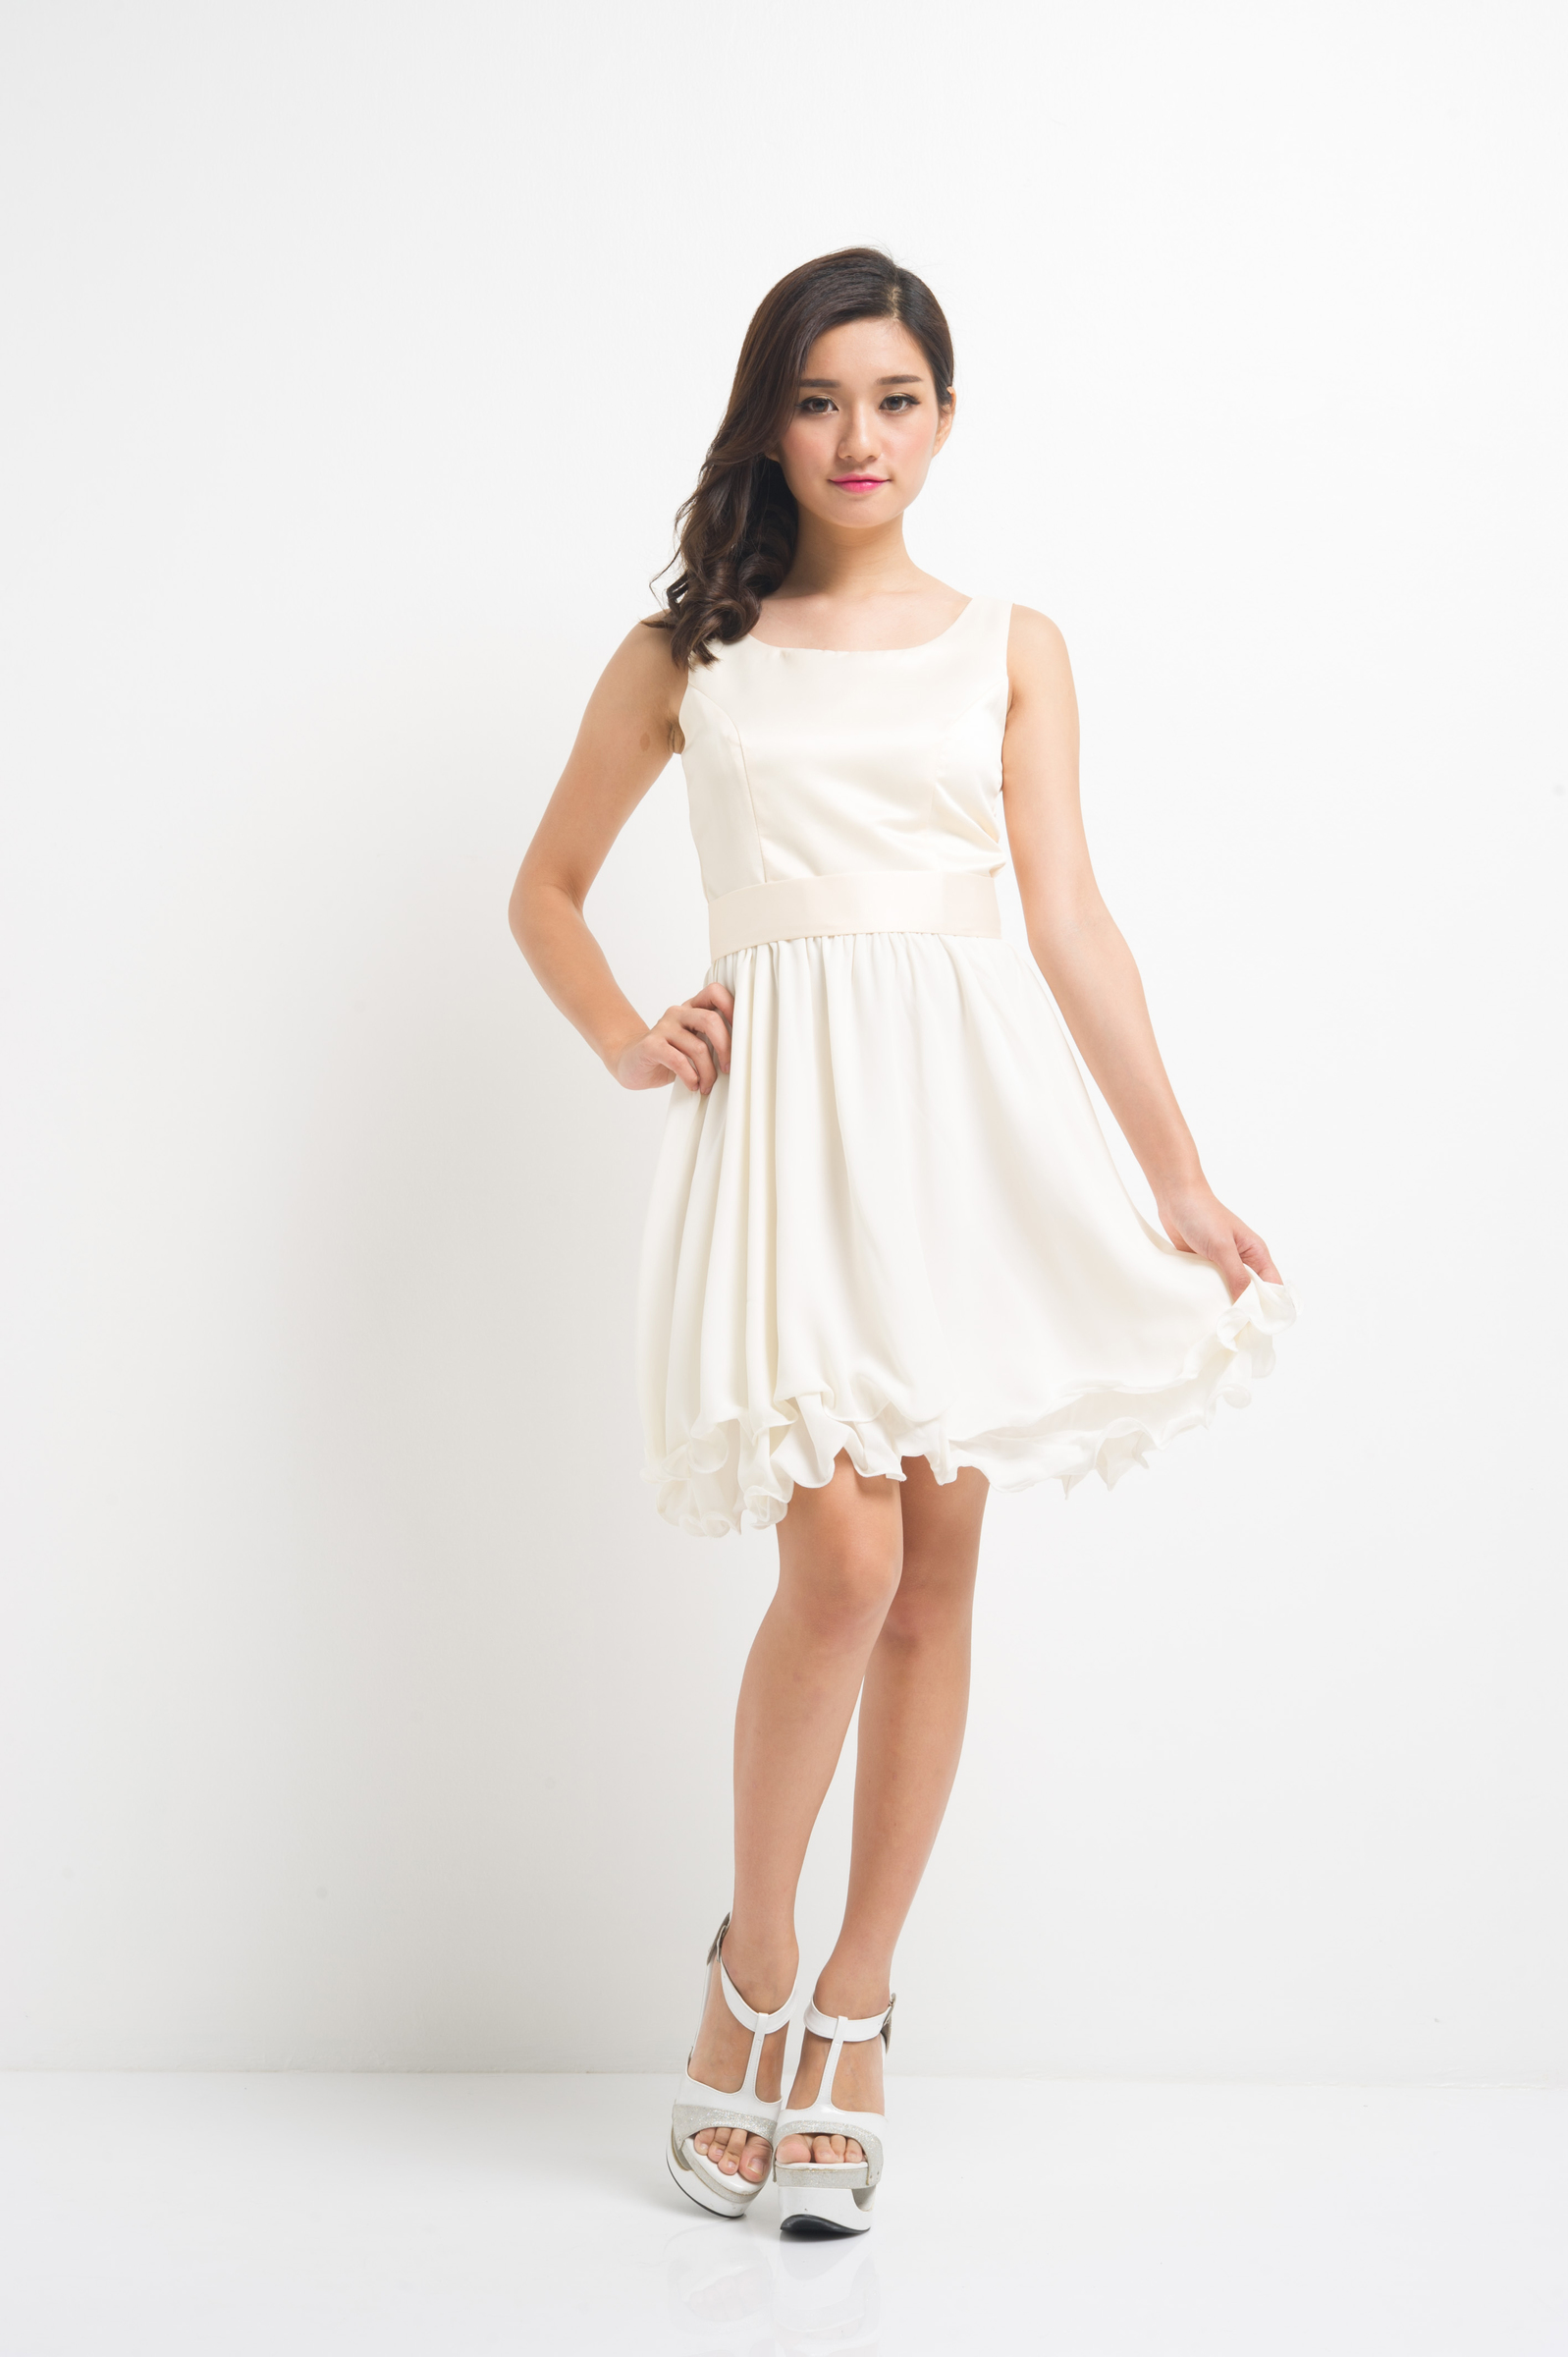 Angel Dress-192 ed.jpg